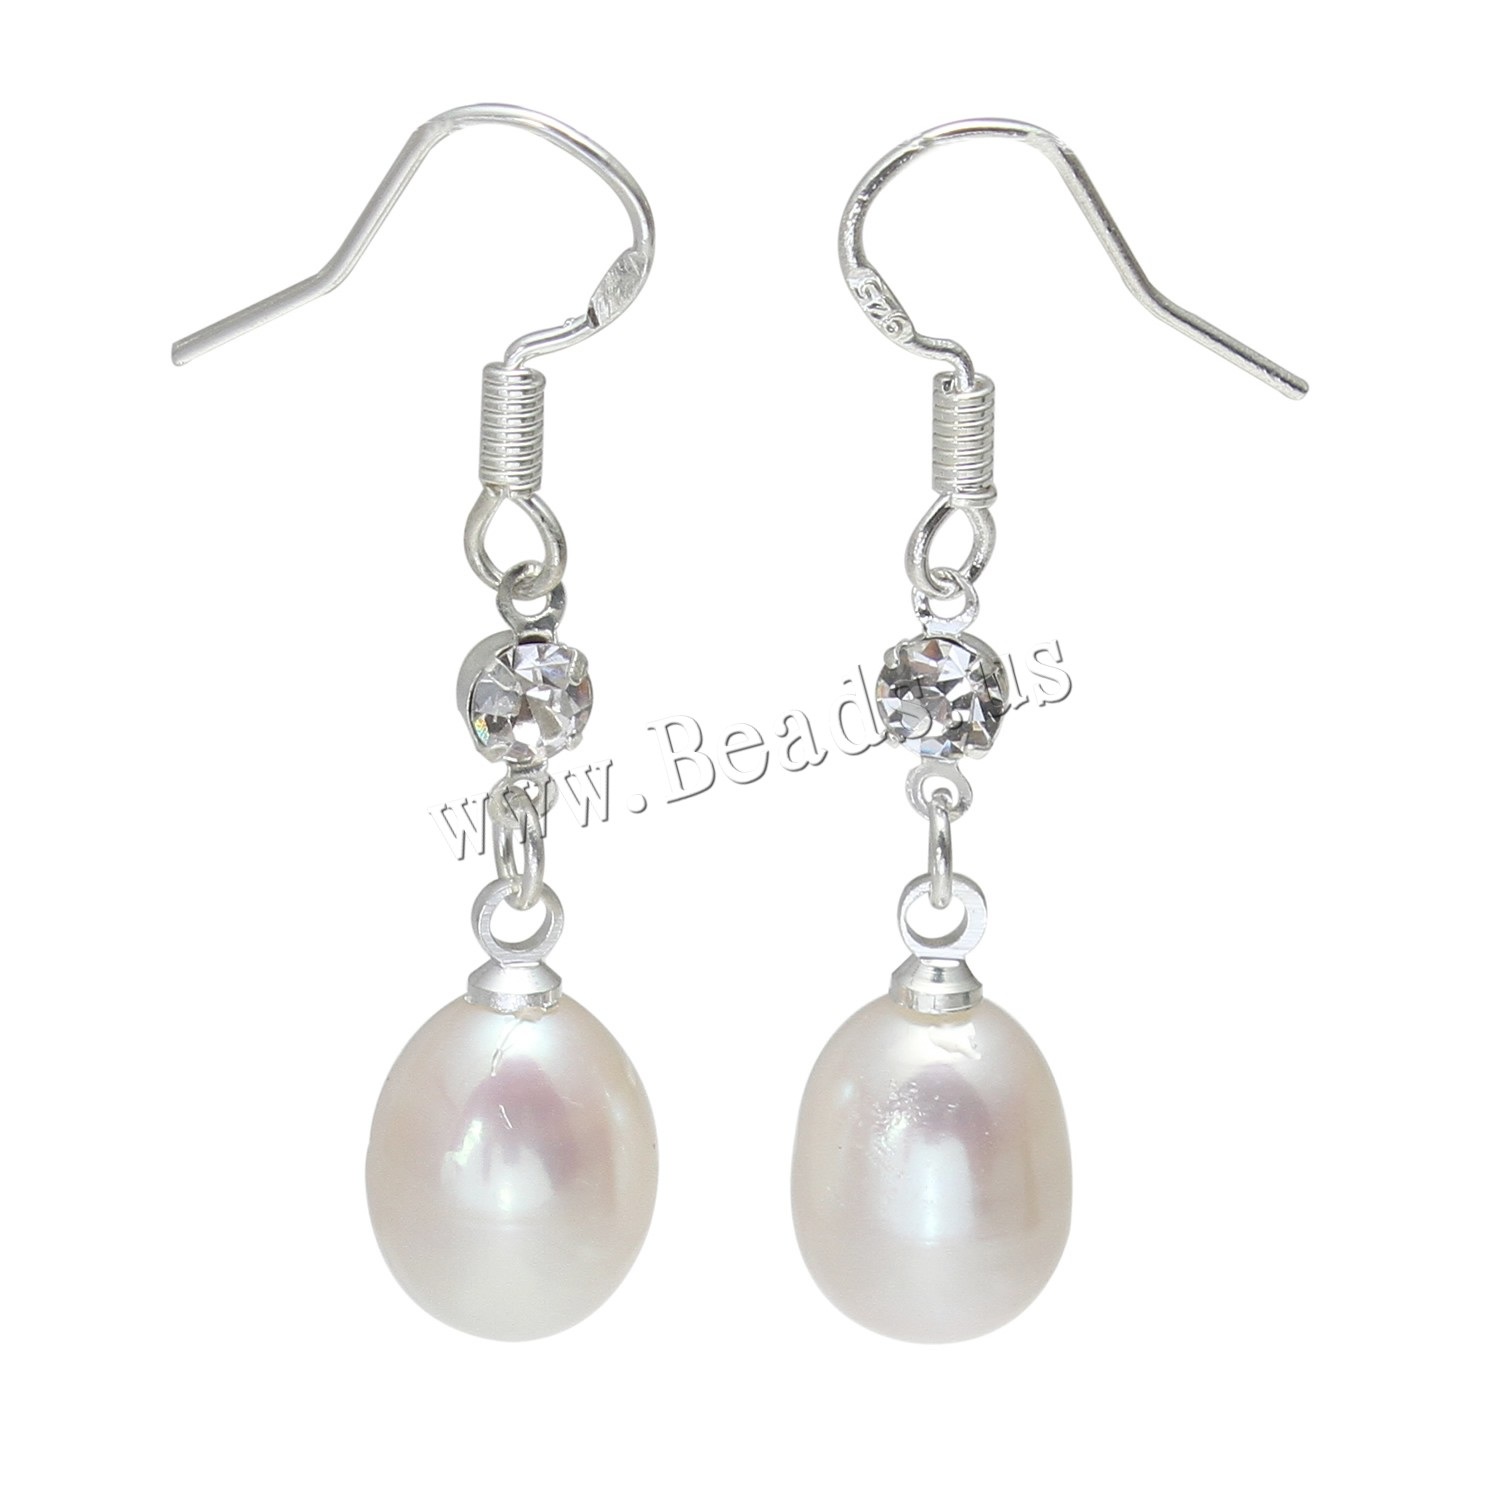 Buy Freshwater Pearl Earrings Brass Rice platinum color plated woman & rhinestone white 10-11mmuff0c39mm Sold Pair